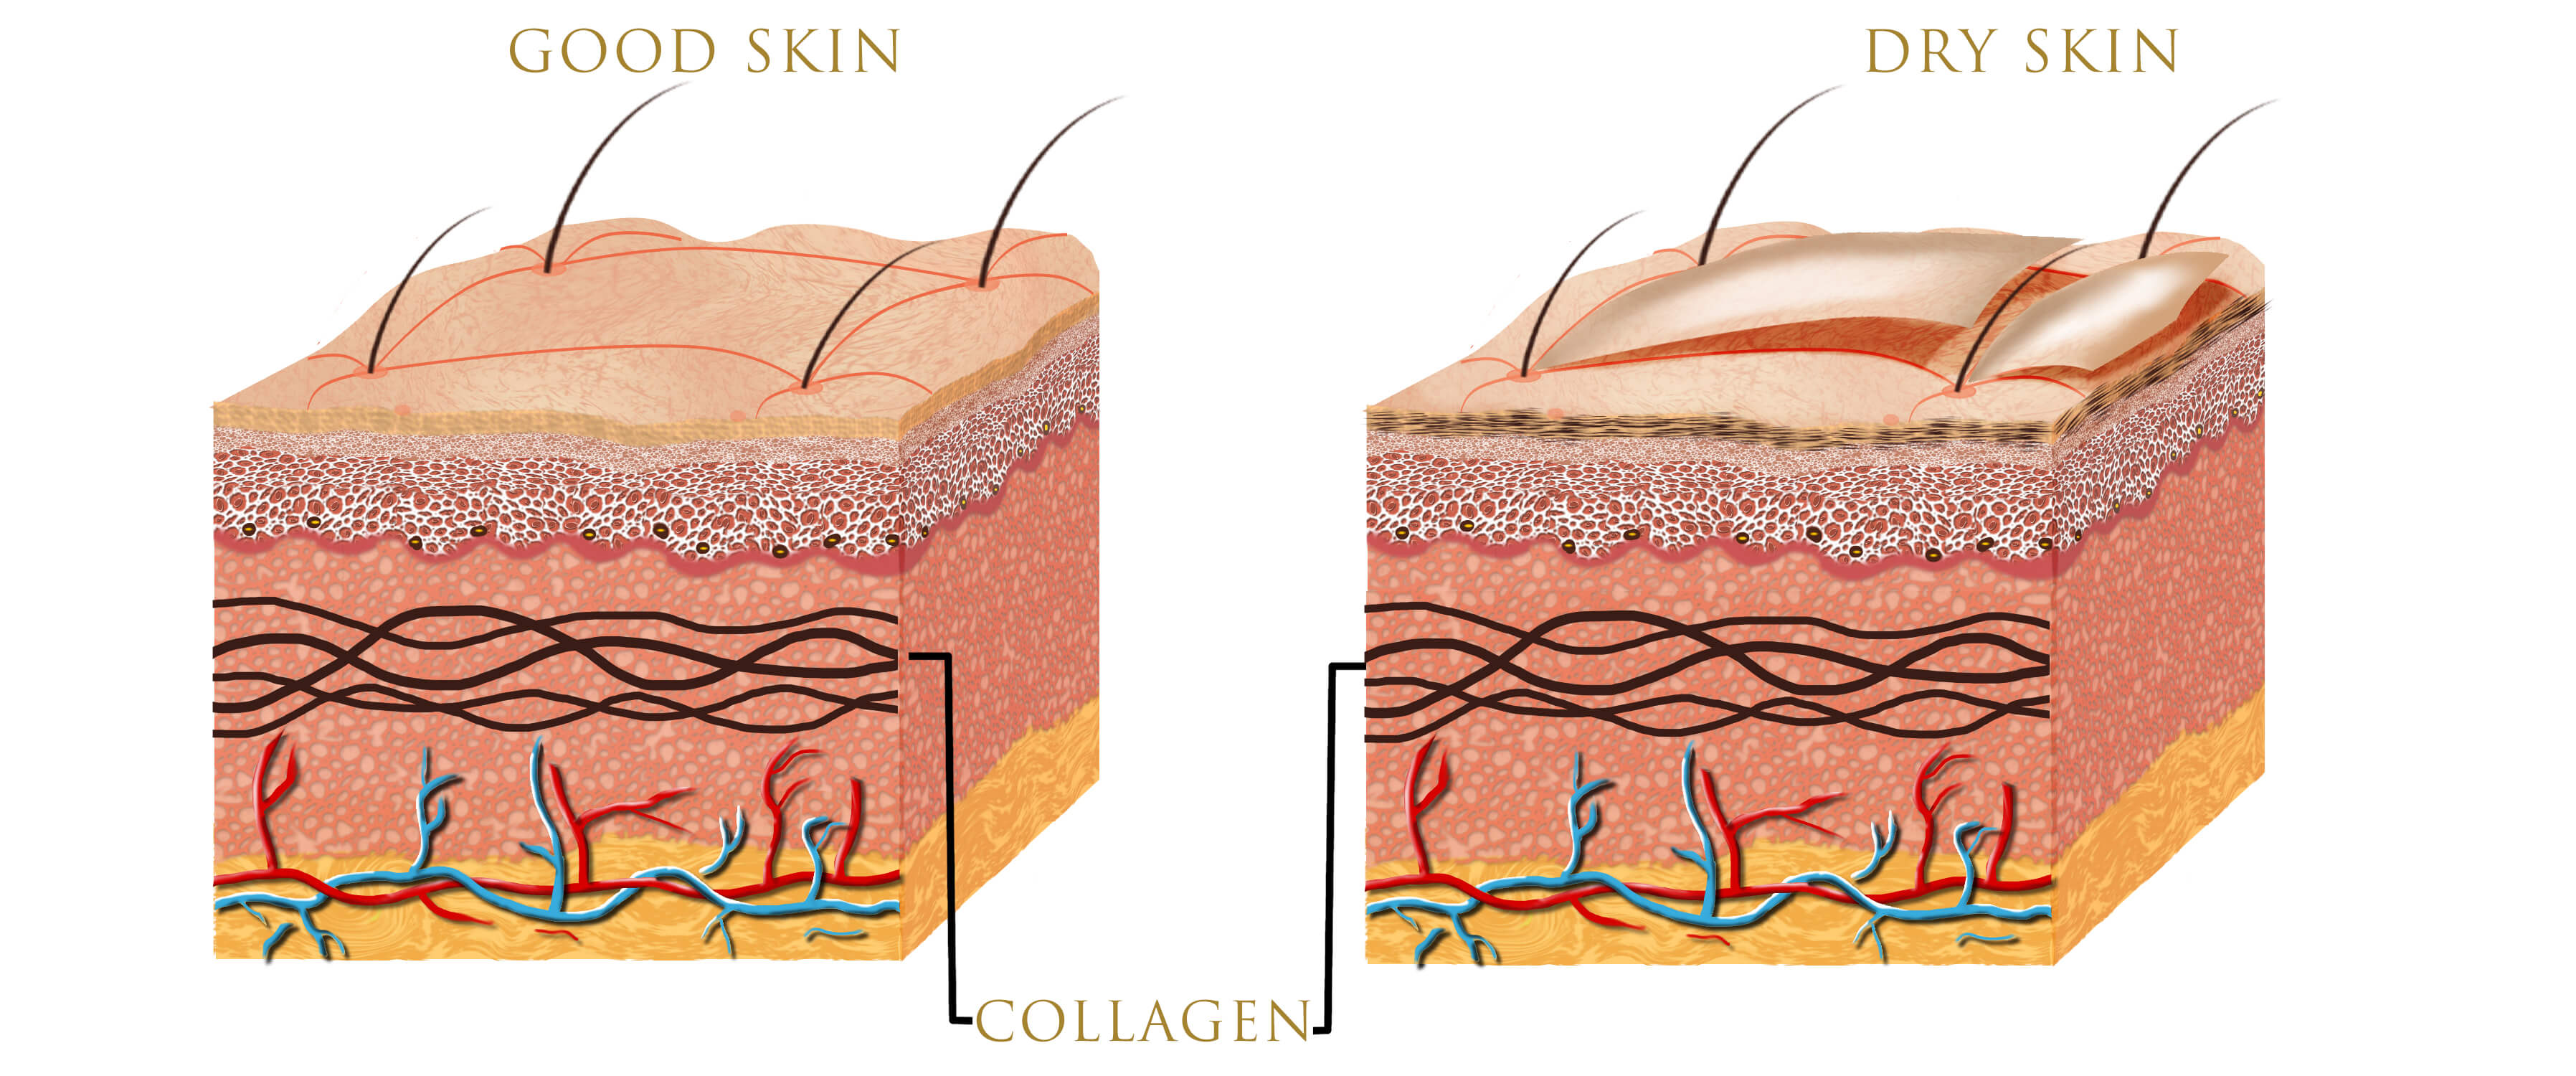 Infographic on layers of skin and the role of collagen